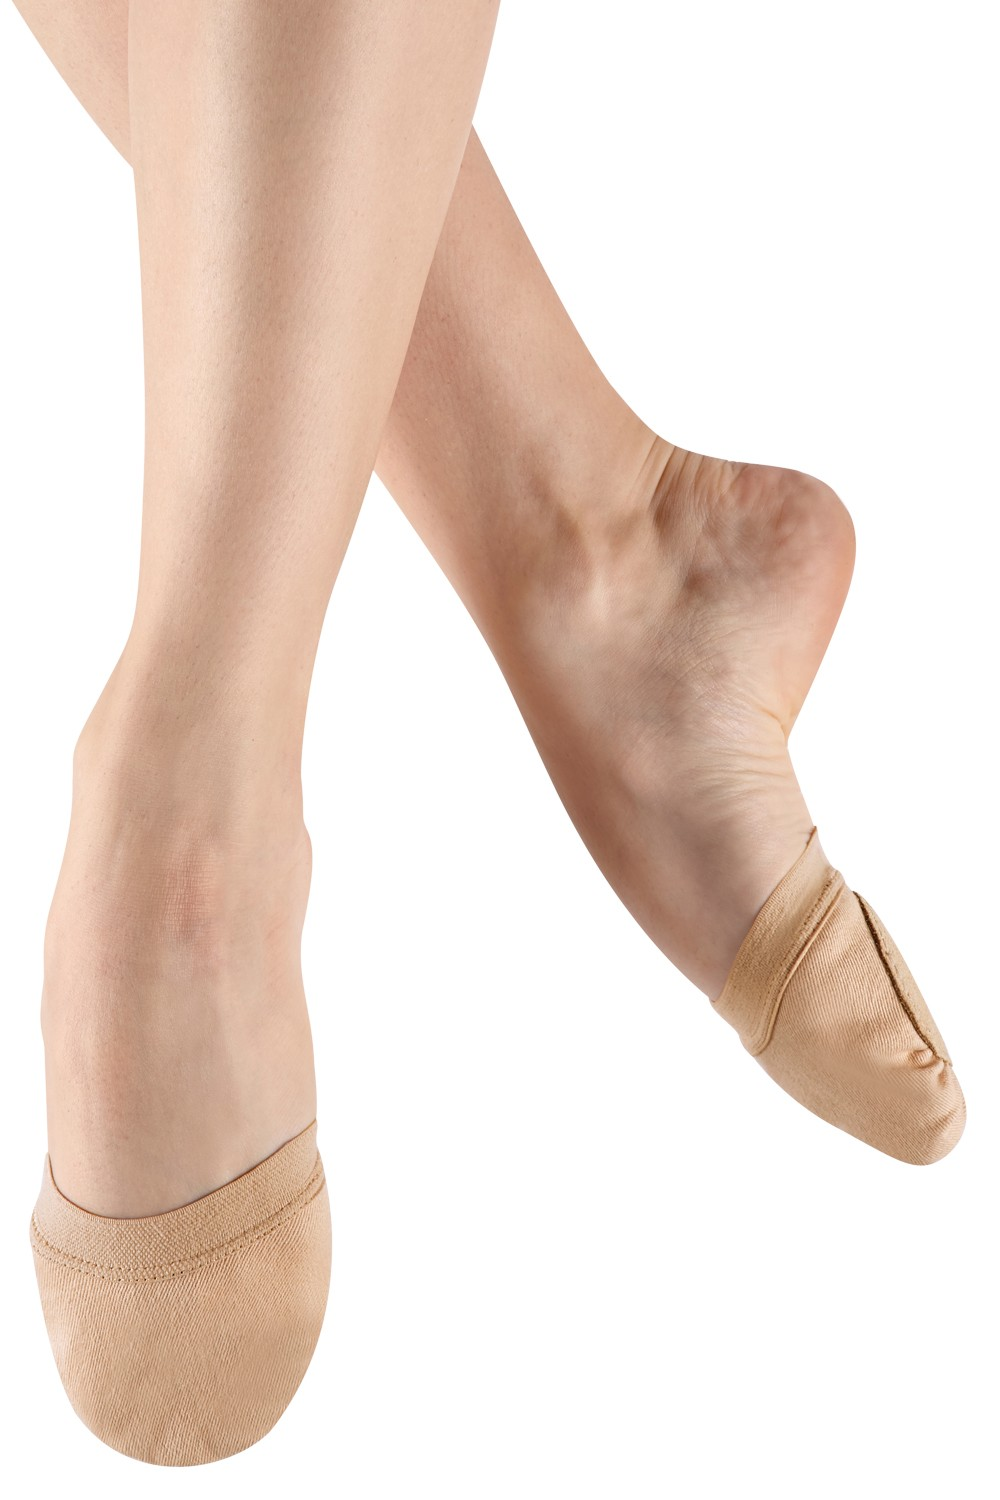 Spin - Narrow Width Women's Contemporary Dance Shoes